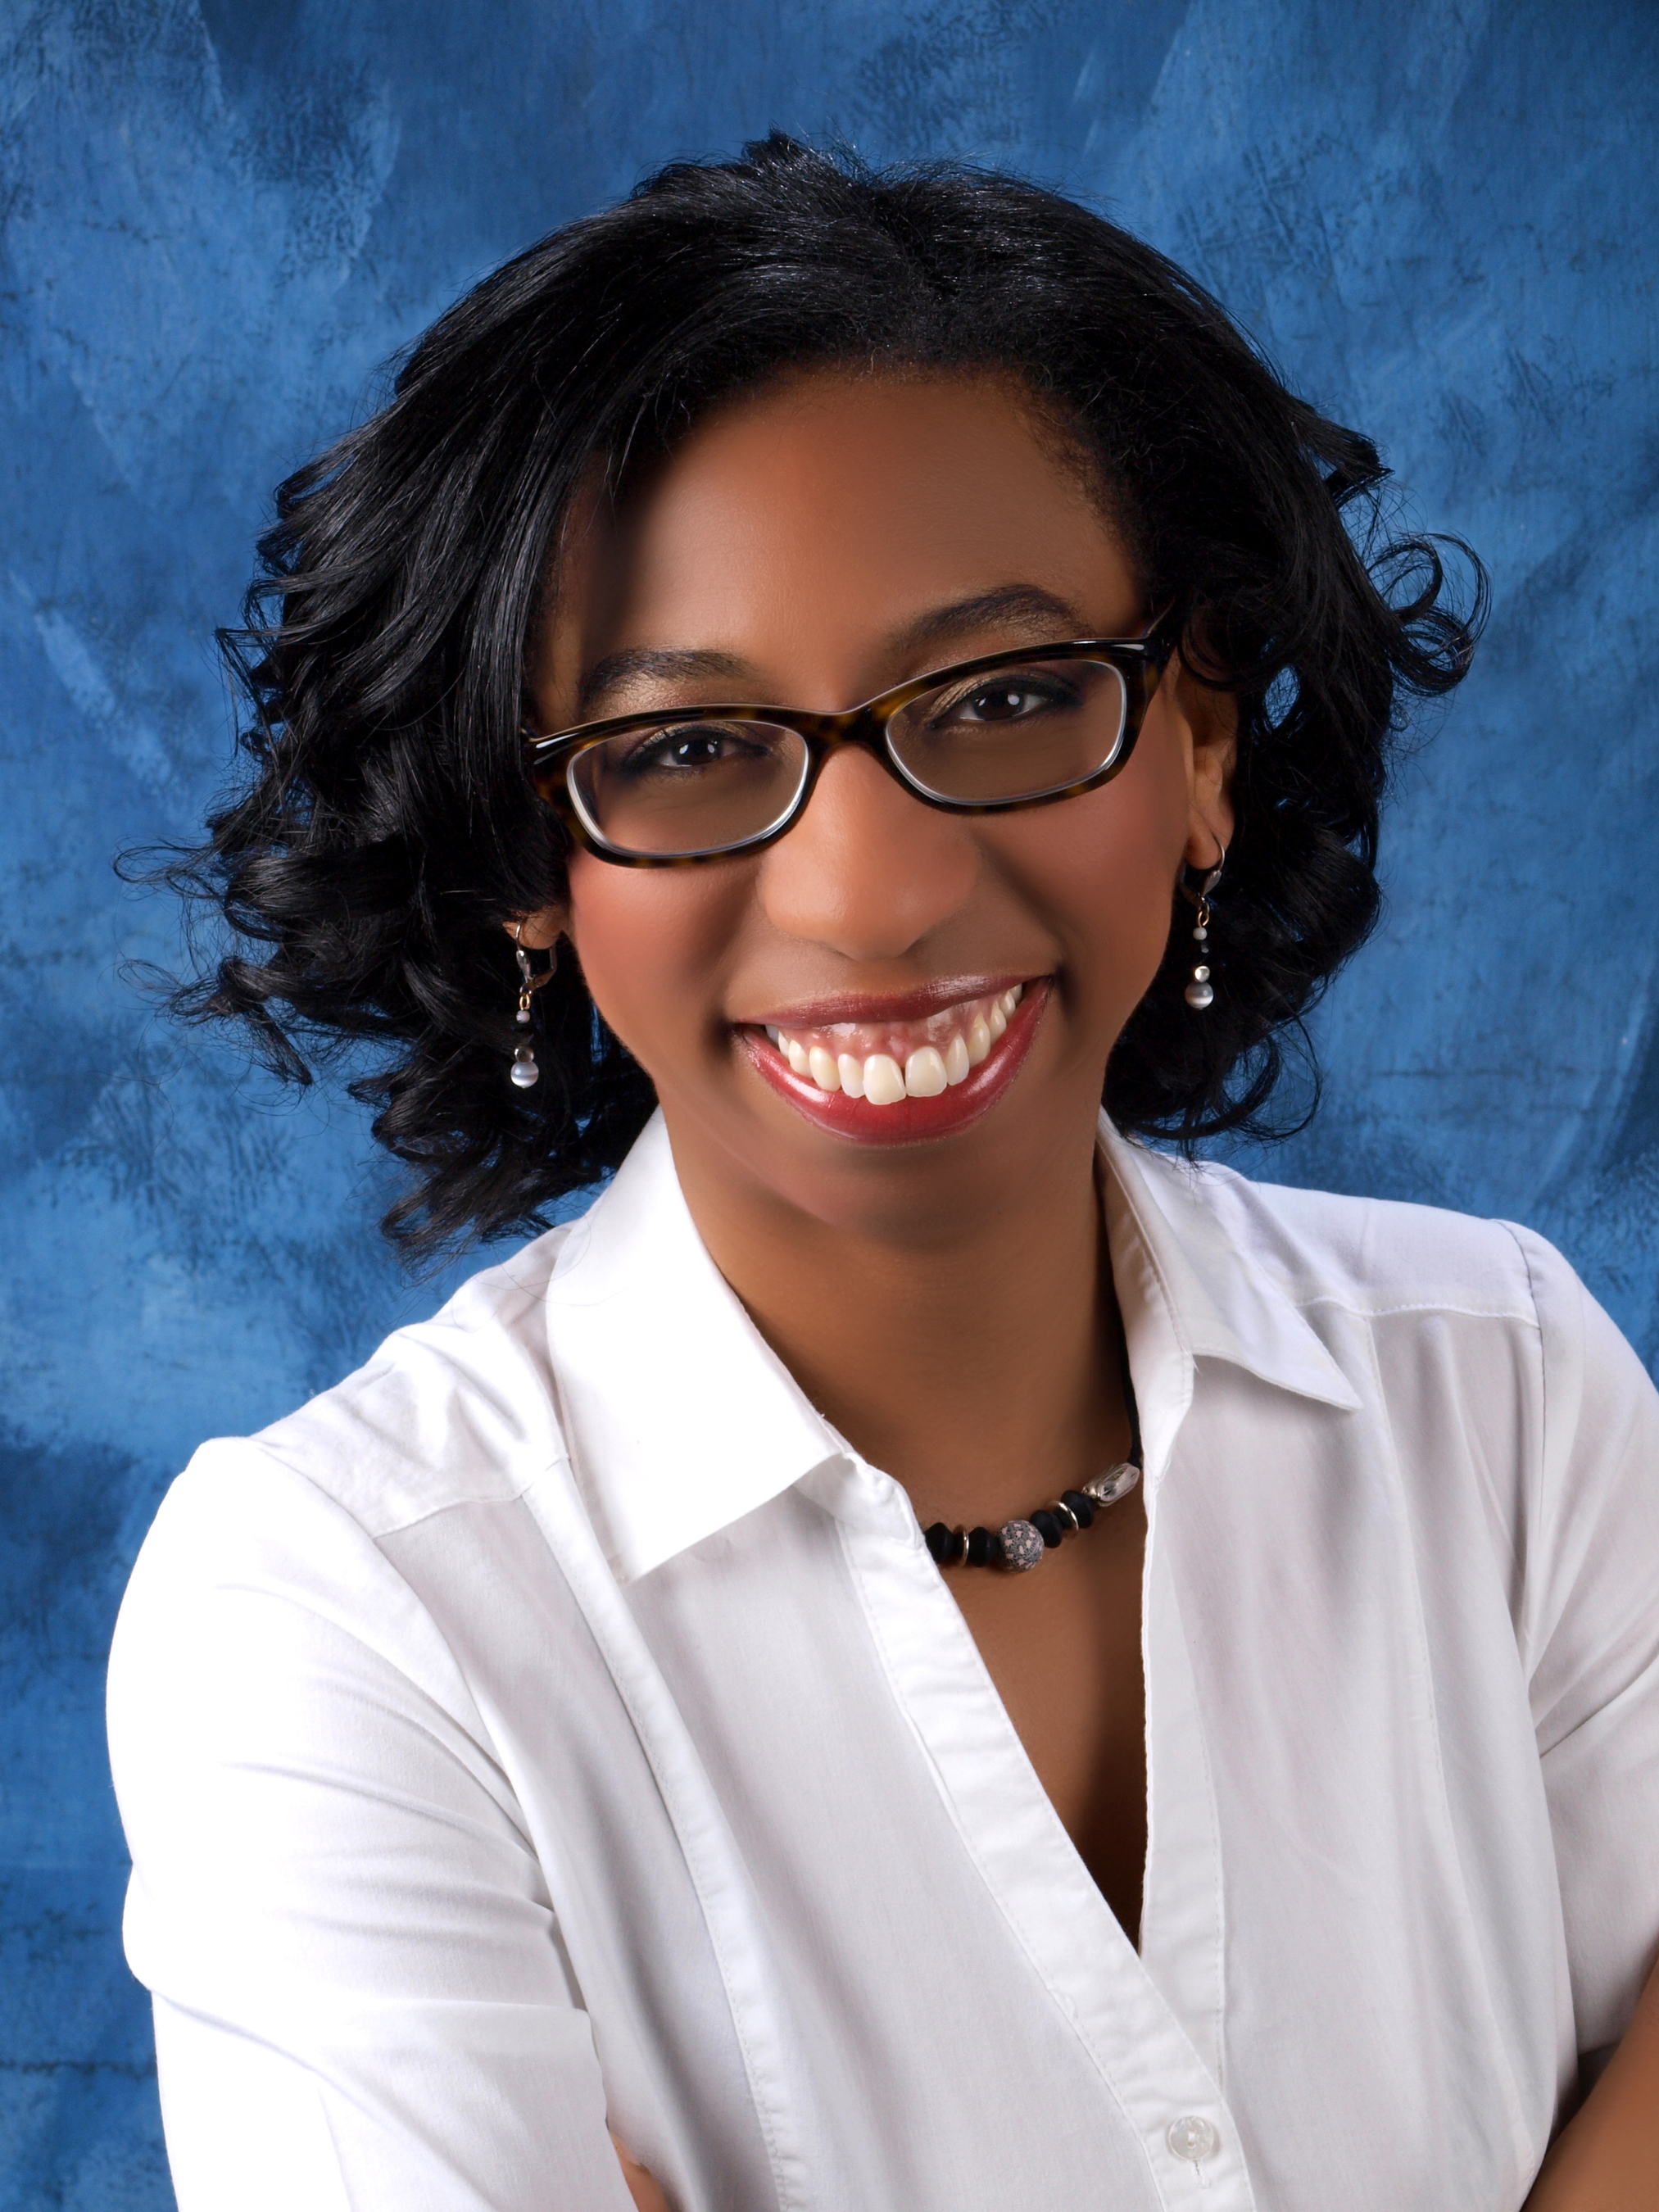 Author K. R. Raye will sign books at BEA on 5/30 from 10-11 am. (PRNewsFoto/J-pad Publishing)